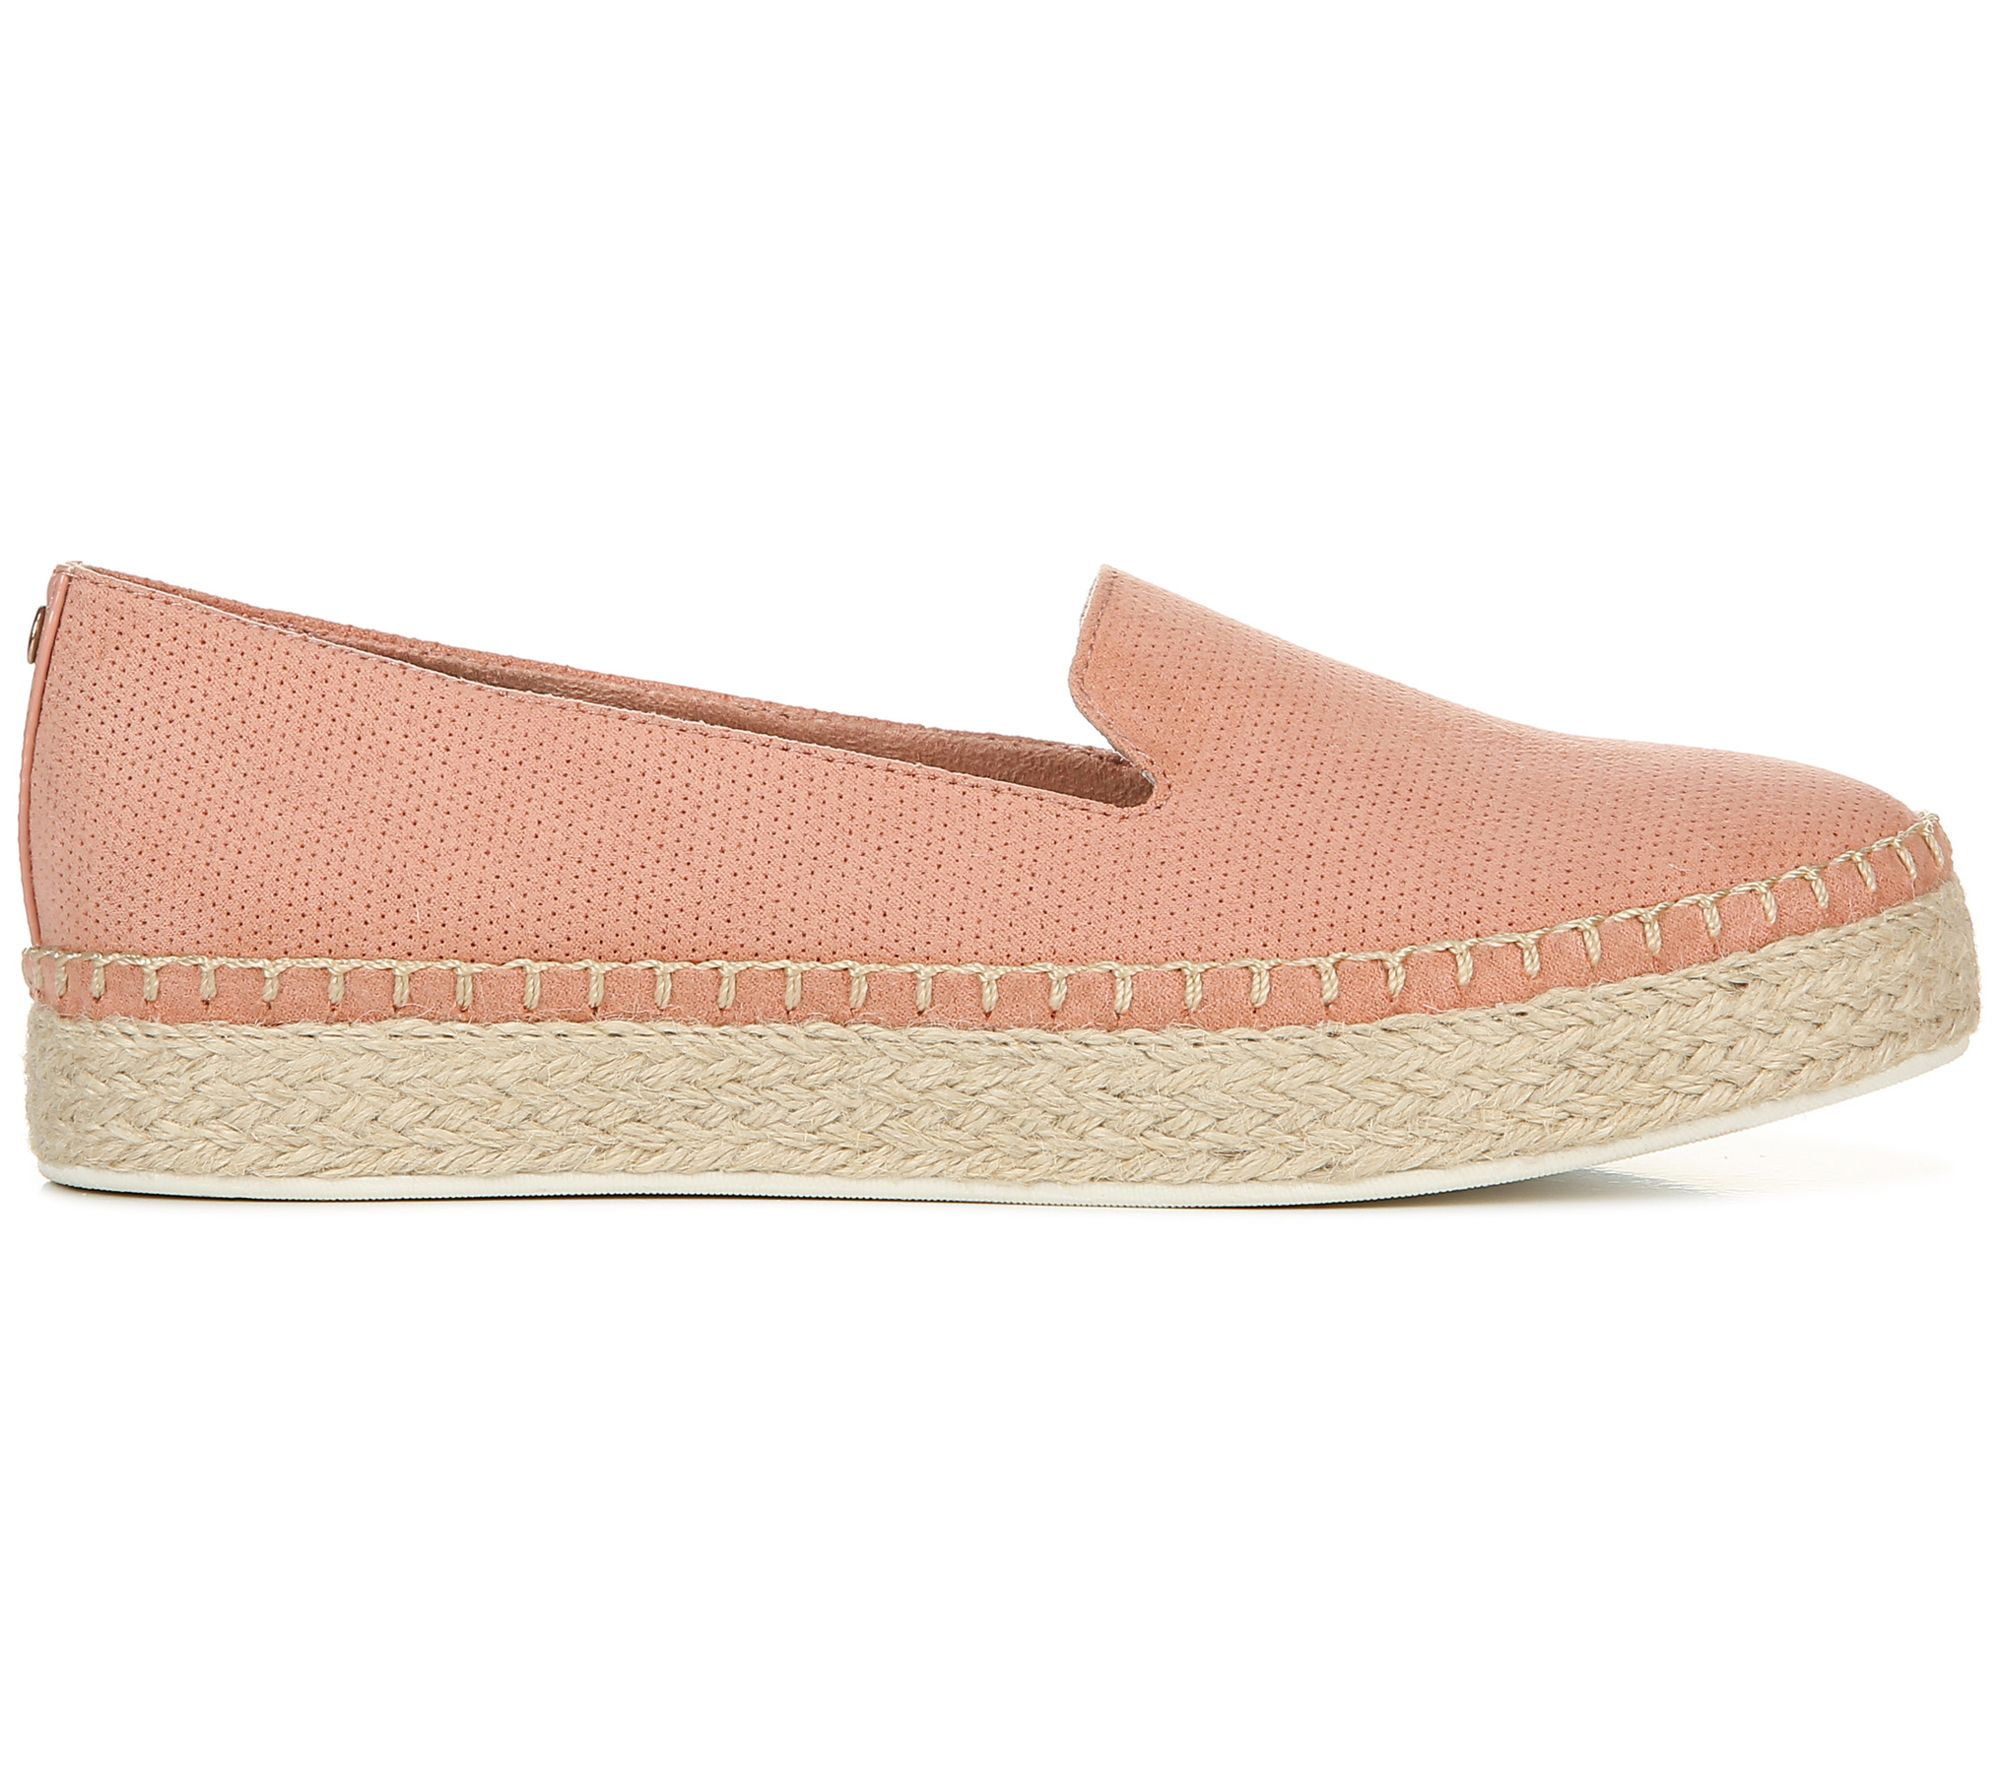 f793b33973b Dr. Scholl s Espadrille Loafers - Find Me - Page 1 — QVC.com